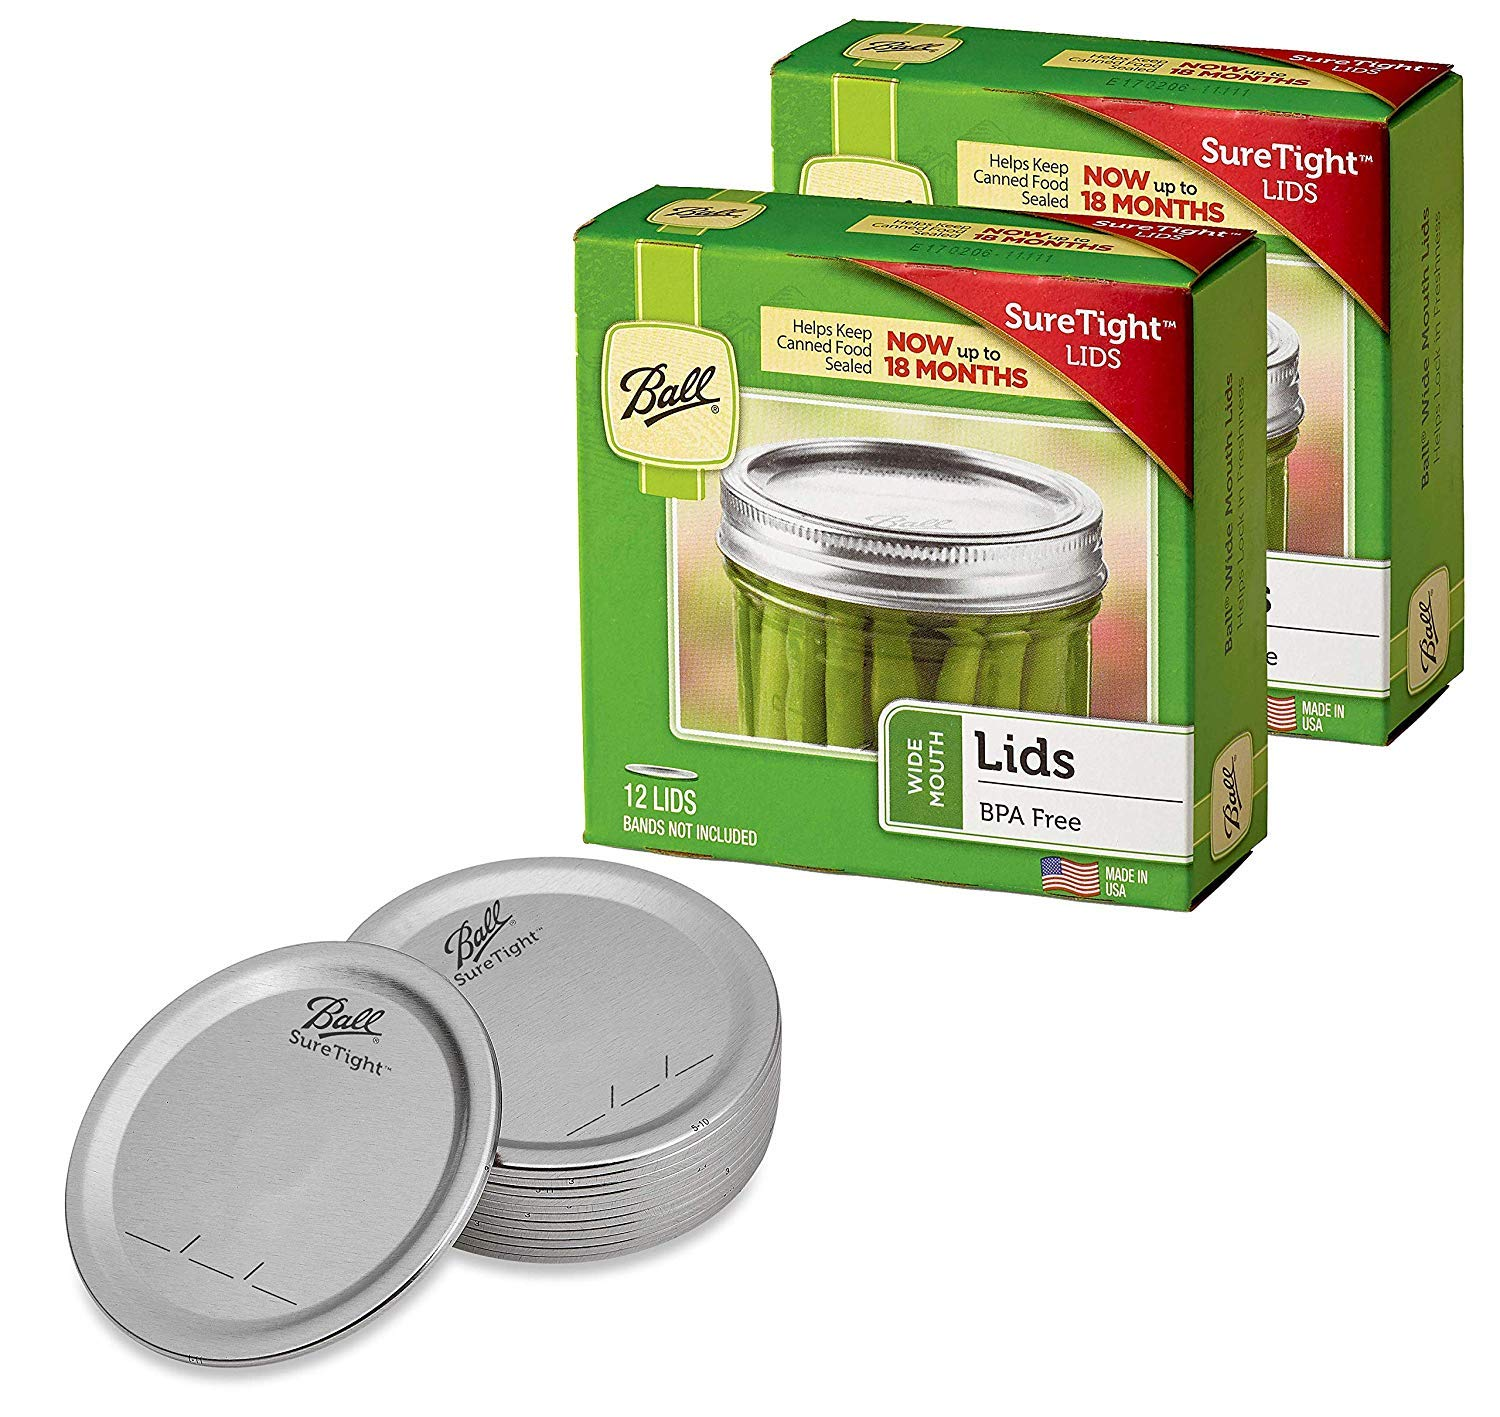 Ball Wide Mouth Mason Jar Lids 12-Count per Pack (2-Packs Total) by Jarden